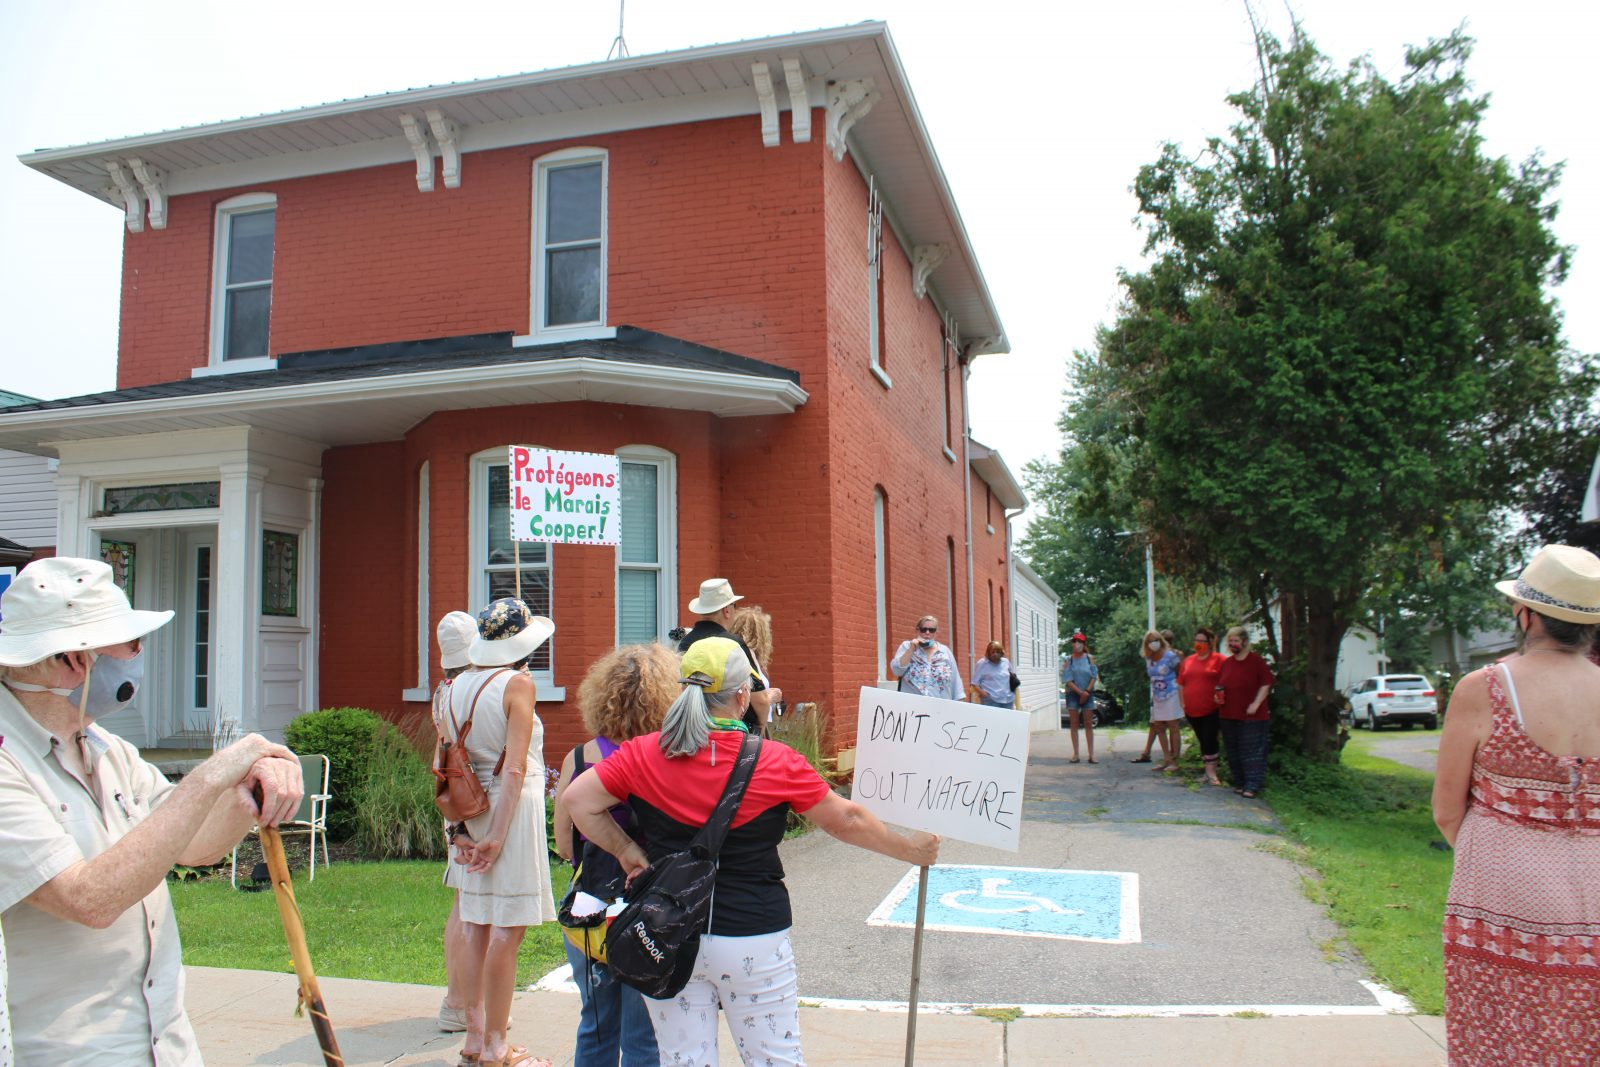 Protesters want to see Cooper Marsh protected